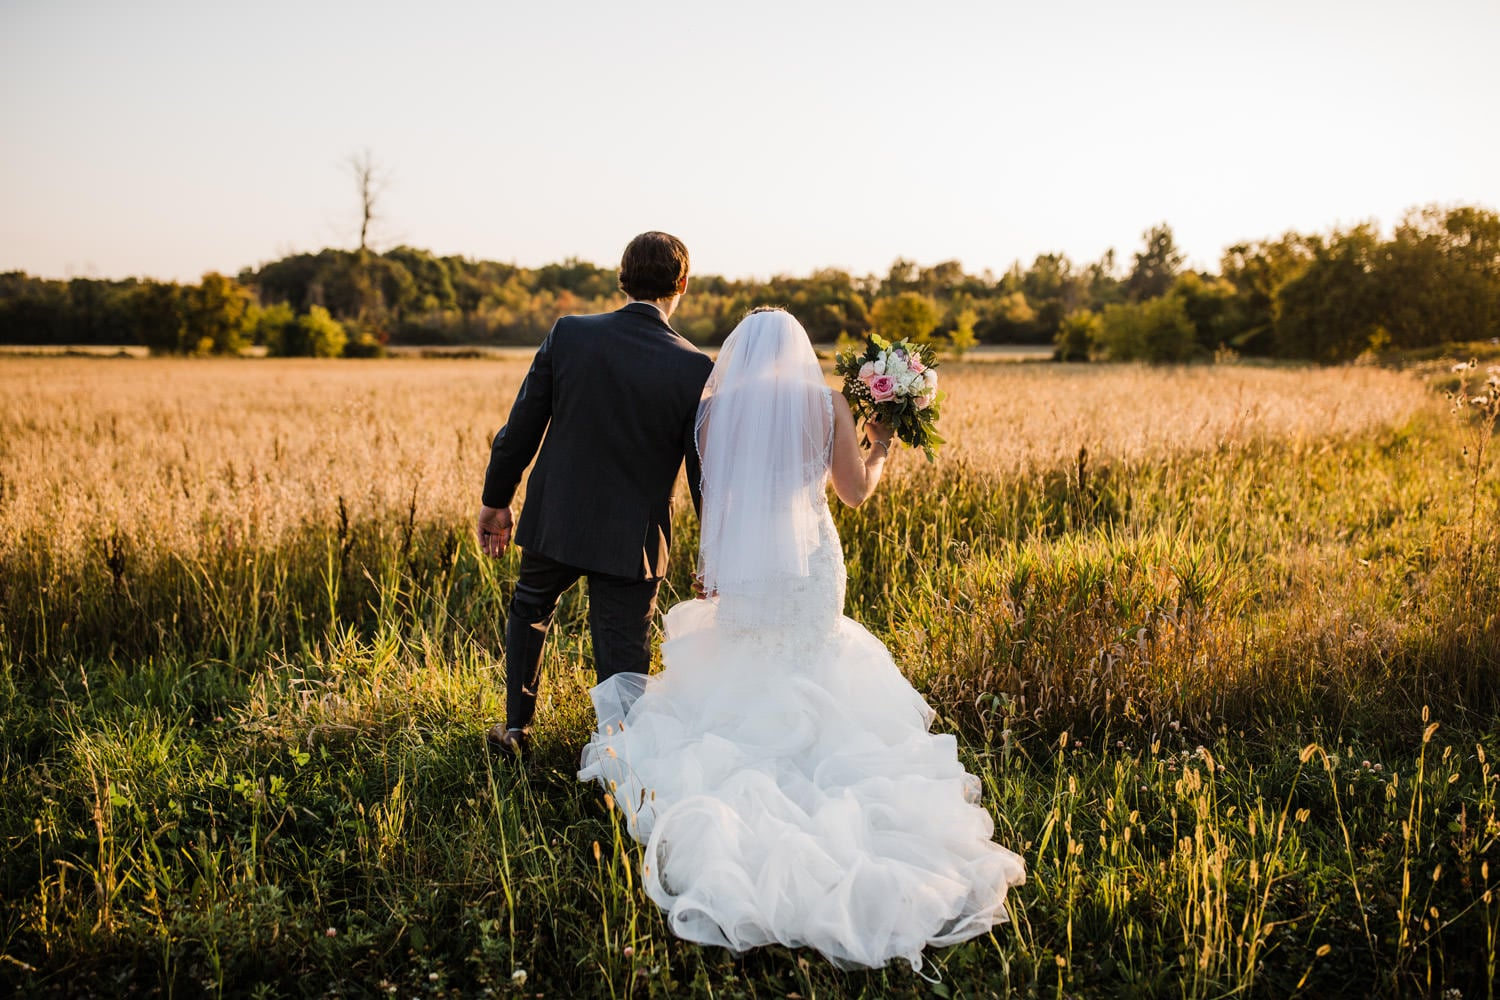 bride and groom walk through field during golden hour